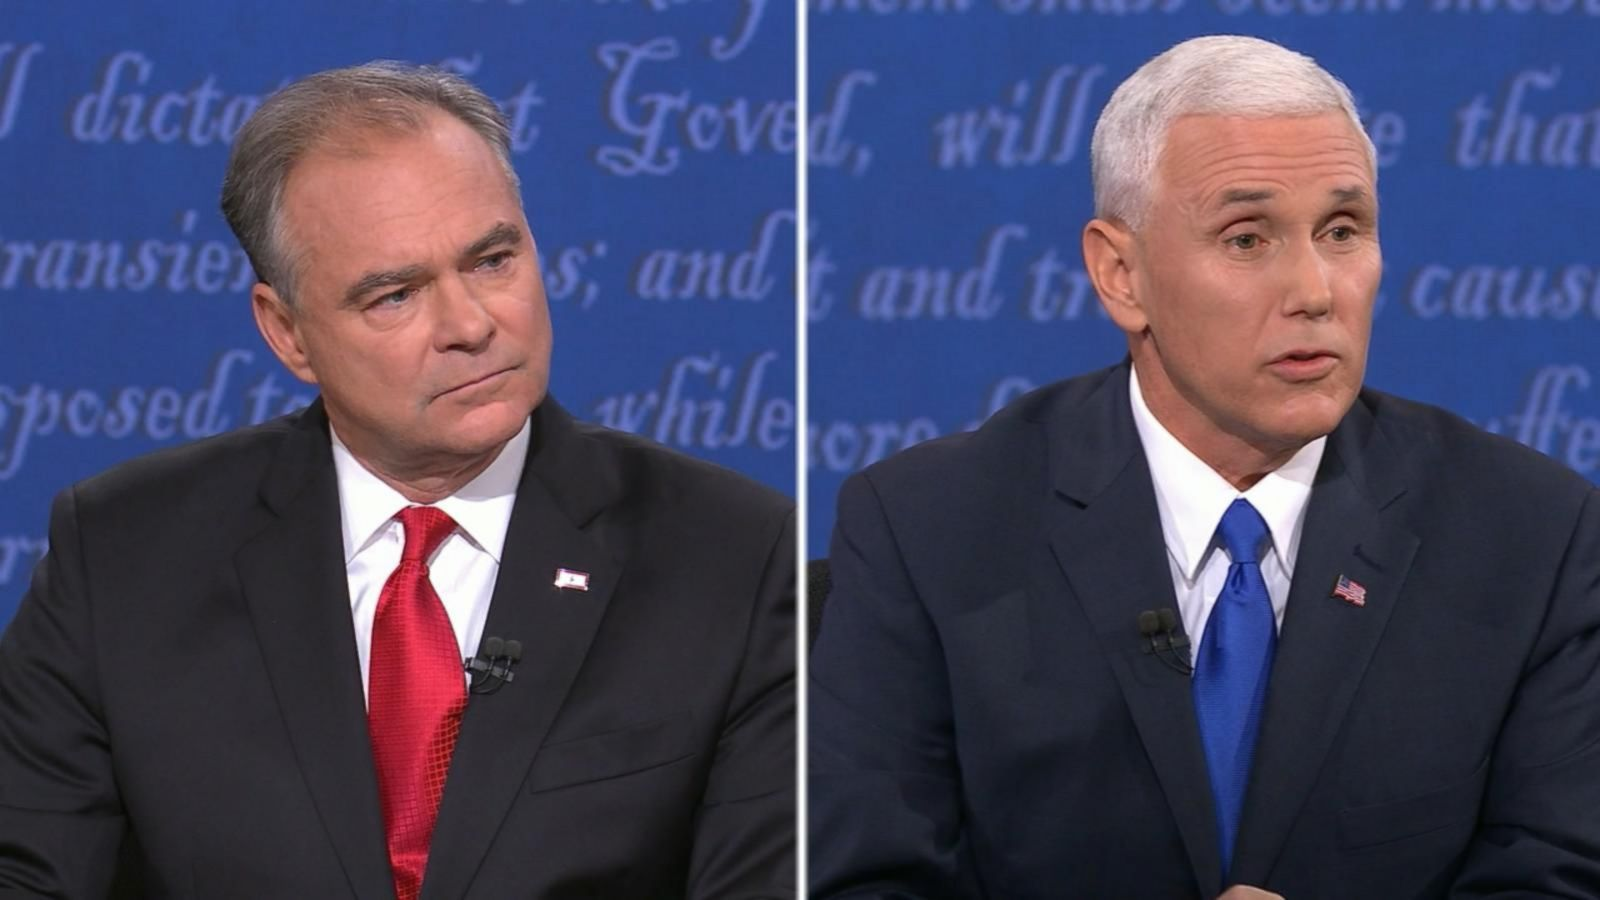 VIDEO: Vice Presidential Nominees Debate Law Enforcement and Race Relations in the US